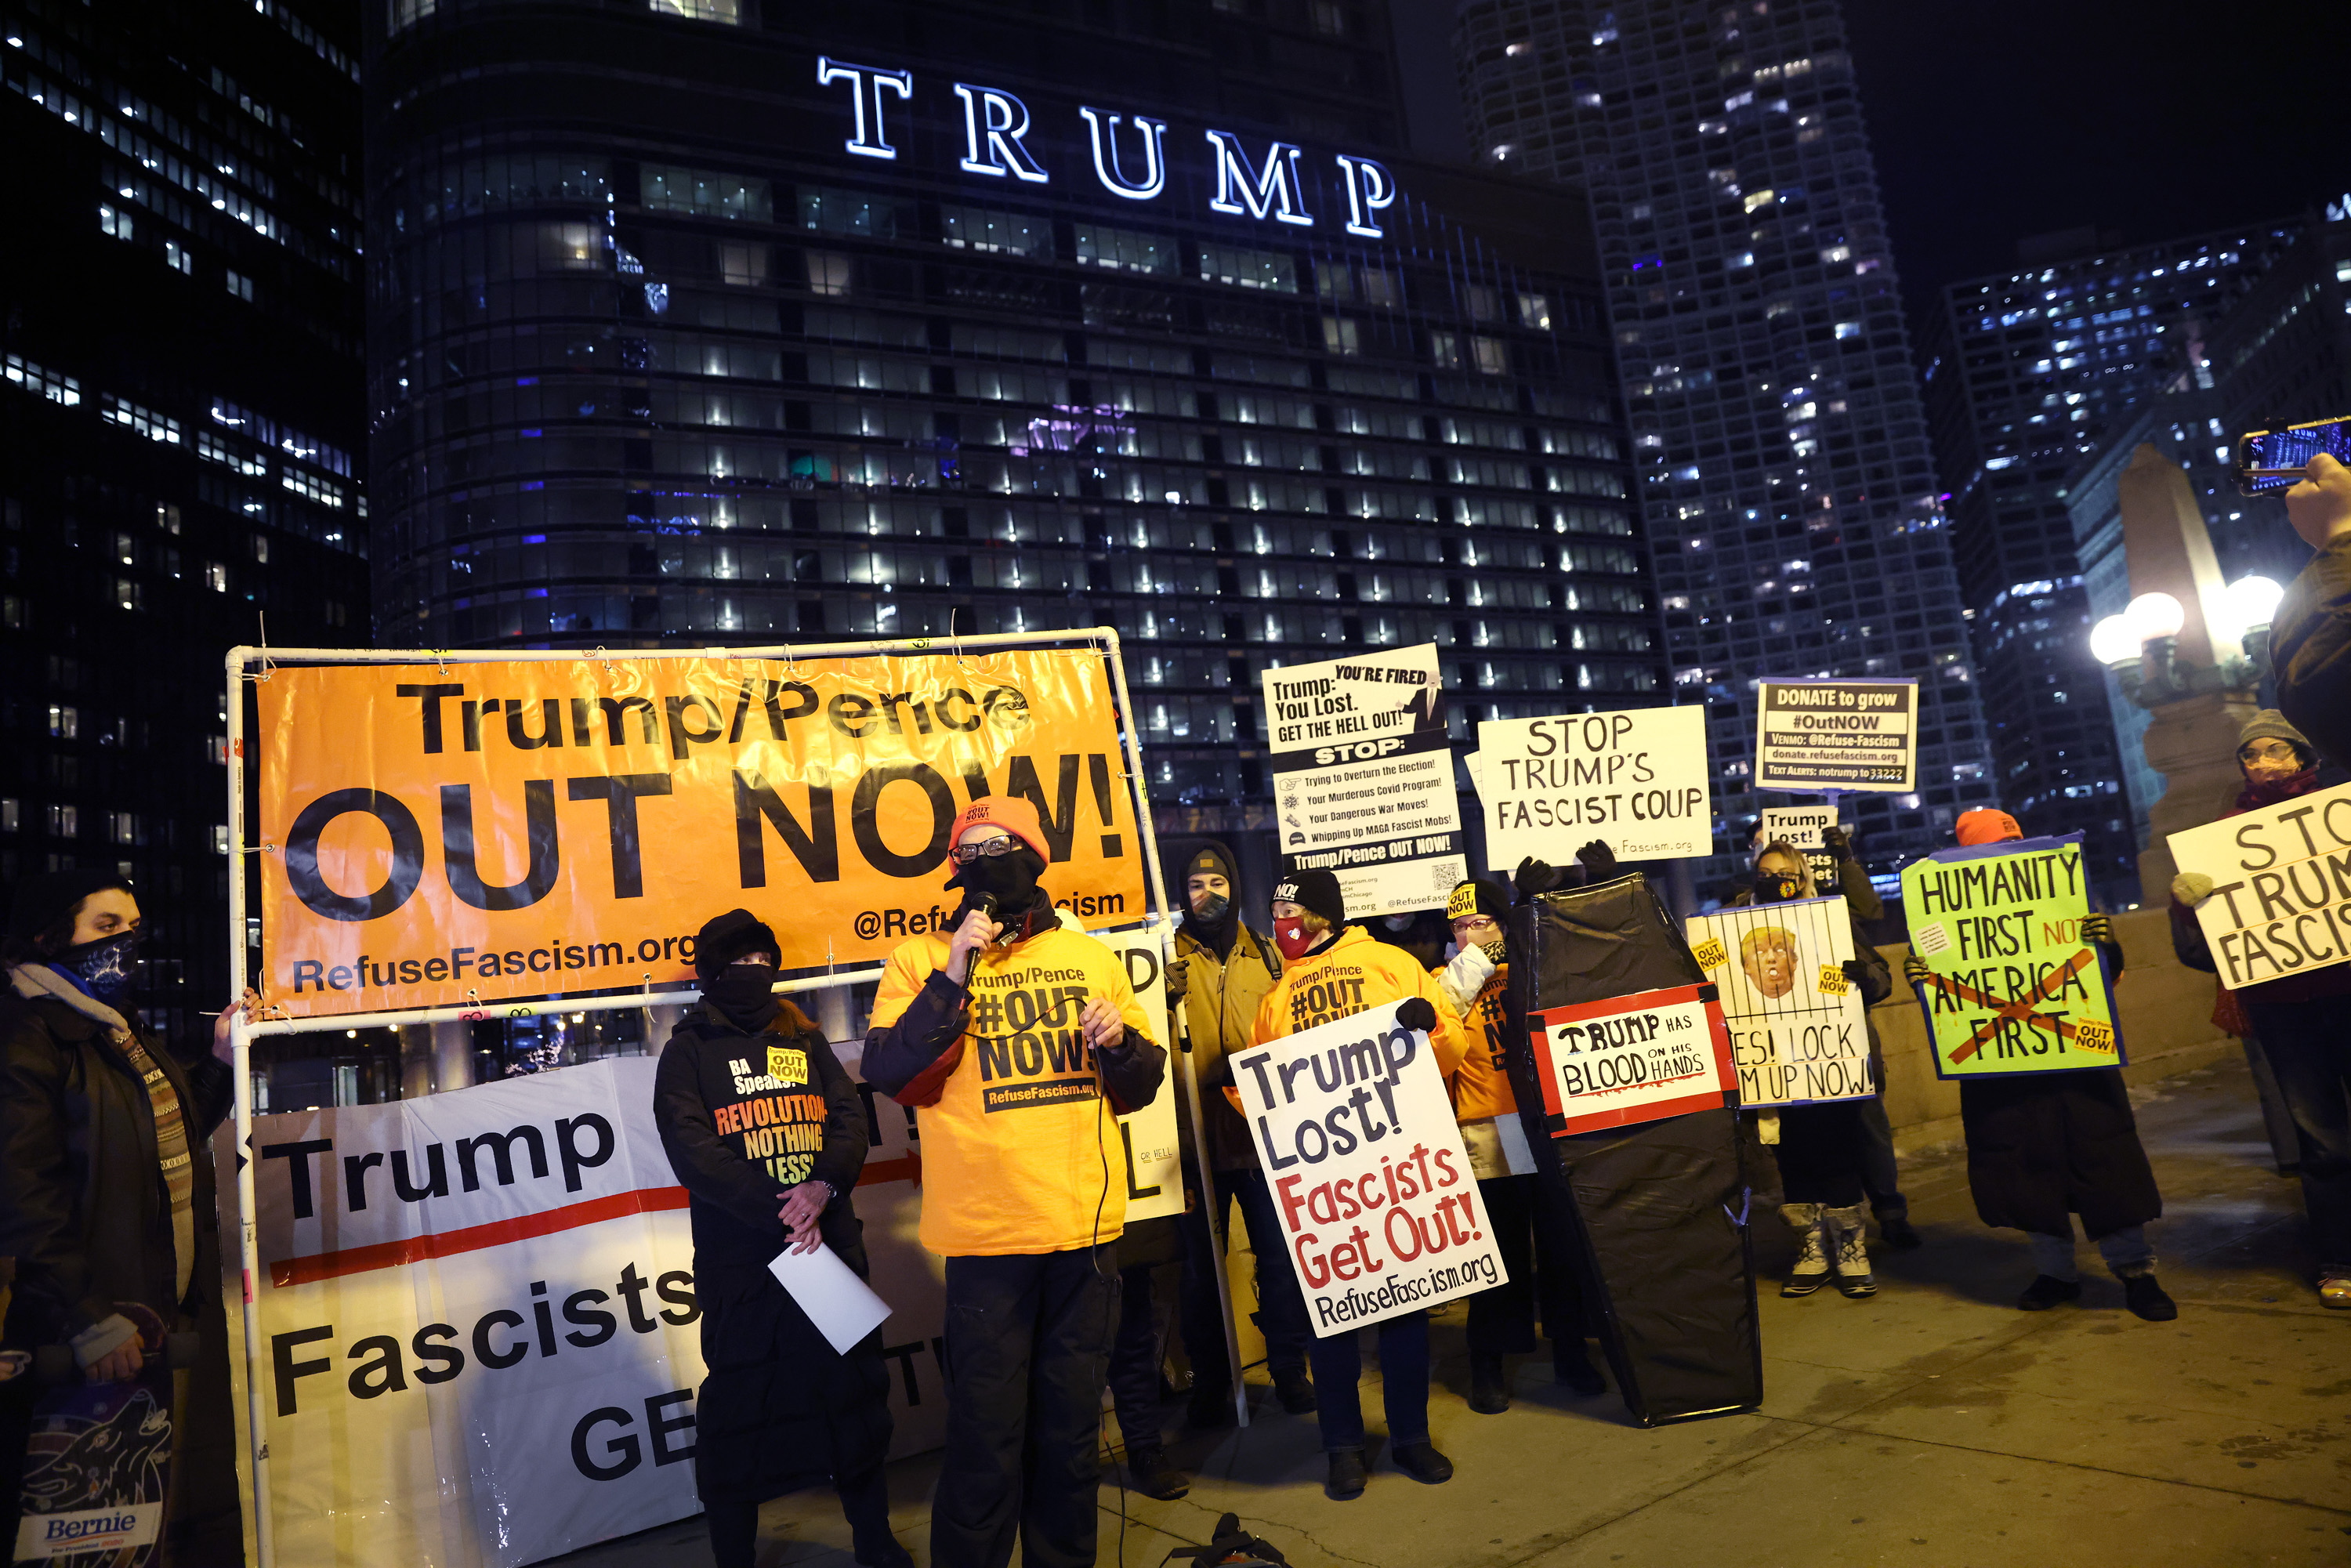 CHICAGO, ILLINOIS - JANUARY 07: A small group of demonstrators protests near Trump Tower on January 07, 2021 in Chicago, Illinois. They called for the removal of President Donald Trump from office after a pro-Trump mob stormed the Capitol building in Washington, DC yesterday as lawmakers met to count the Electoral College votes in the presidential election.  (Photo by Scott Olson/Getty Images)